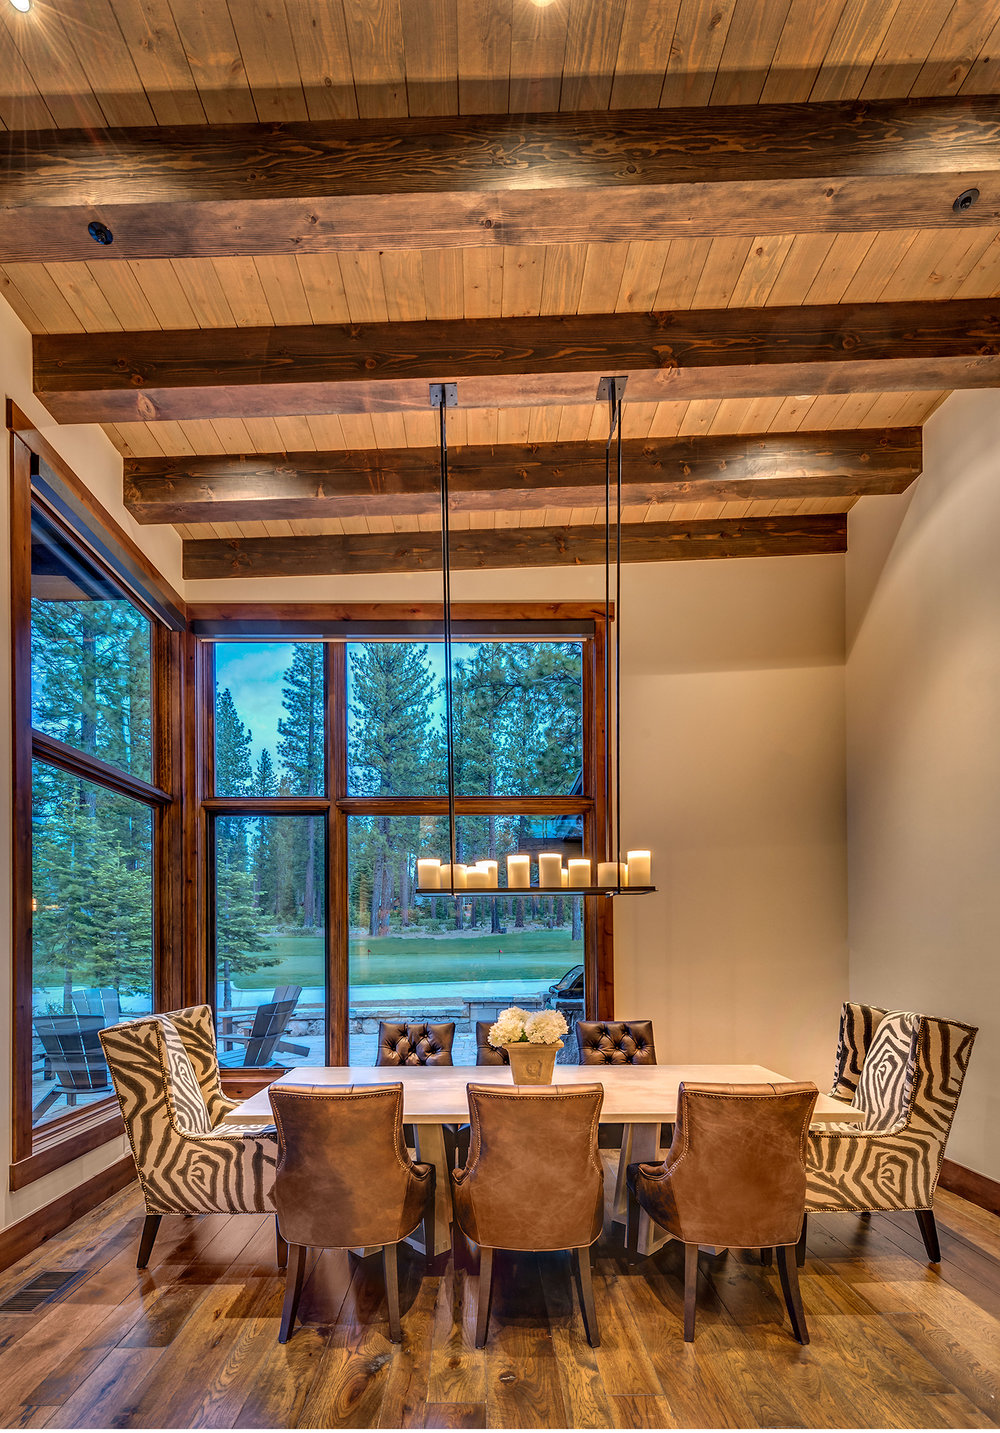 Lot 286_Dining_Wood Floors_Windows_Wood Ceiling.jpg